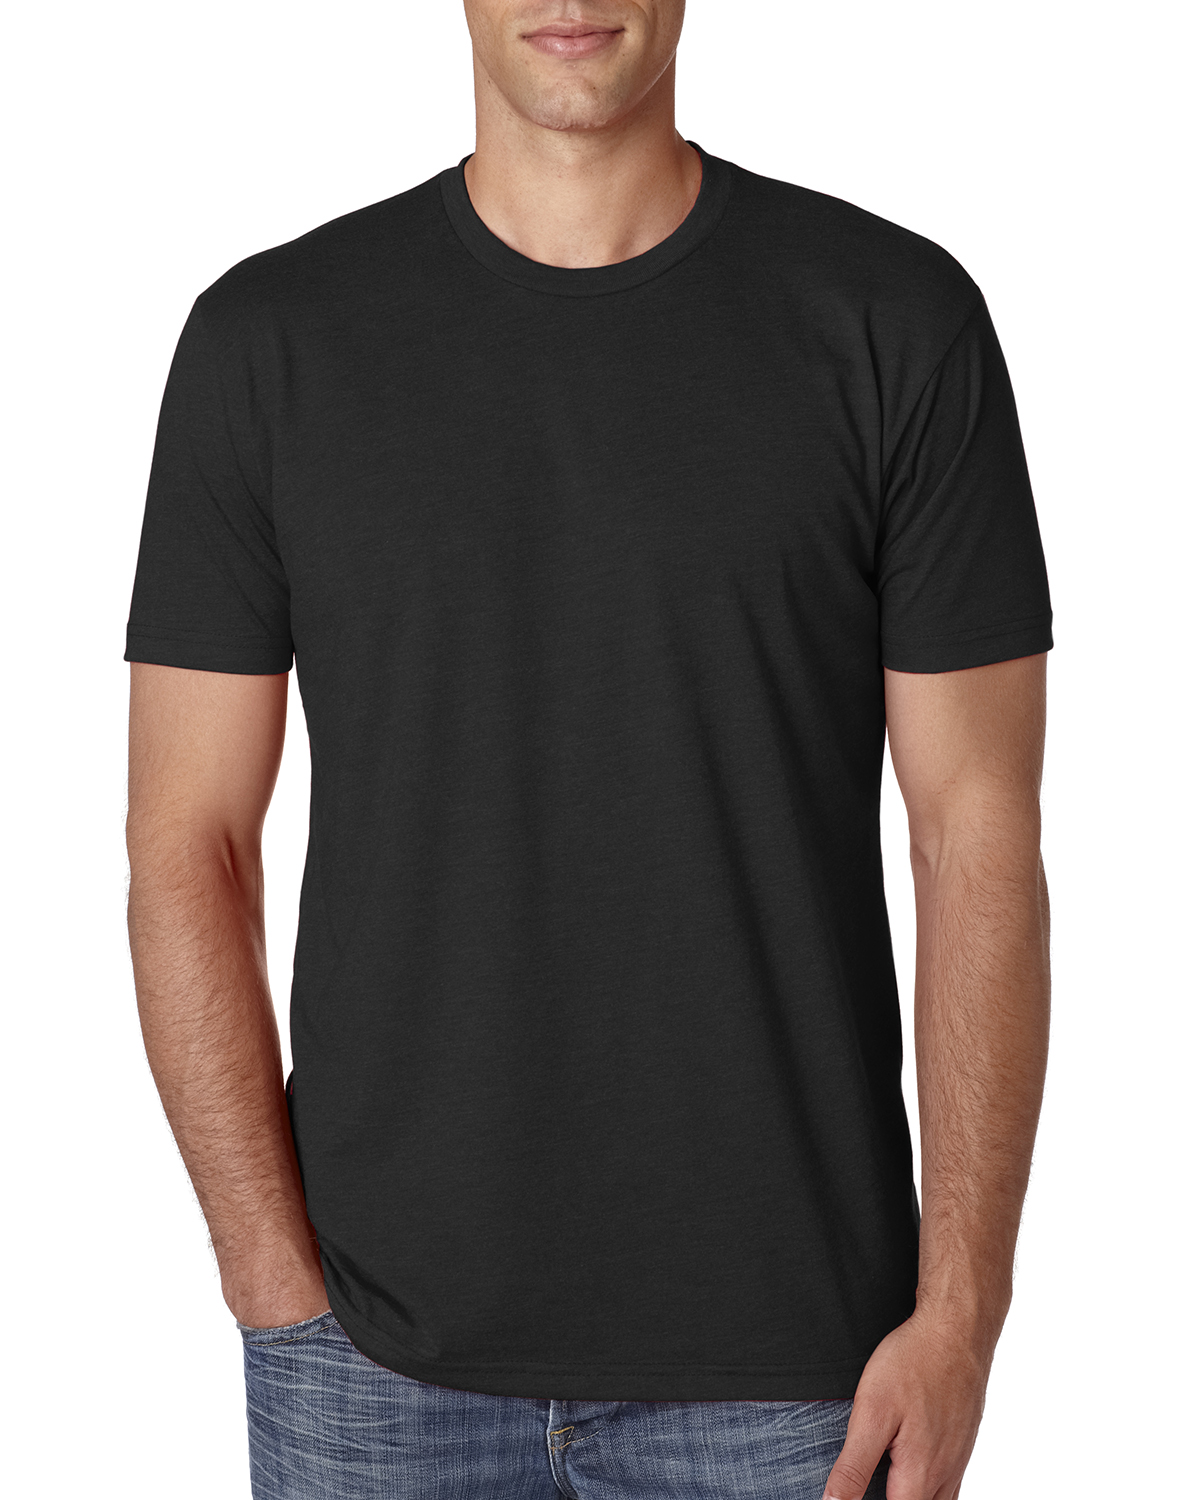 Xs black t shirt - New Next Level Men 039 S Premium Fitted